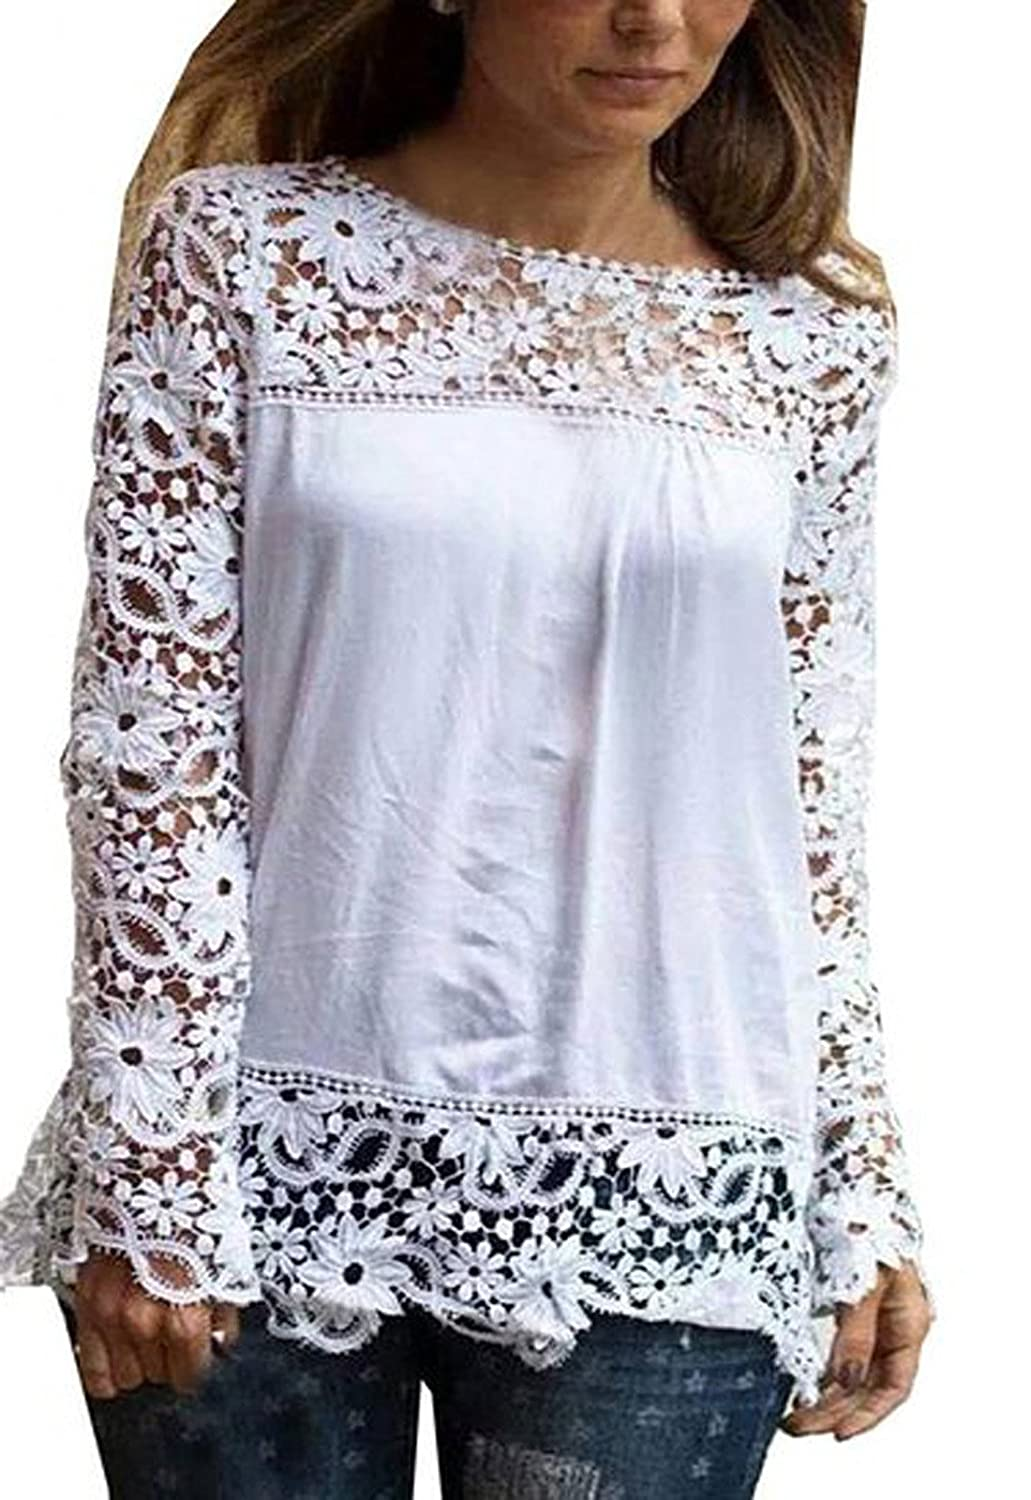 Benjour Women Autumn Hollow Long Sleeve Lace Chiffon T-shirt Tops Casual Blouses